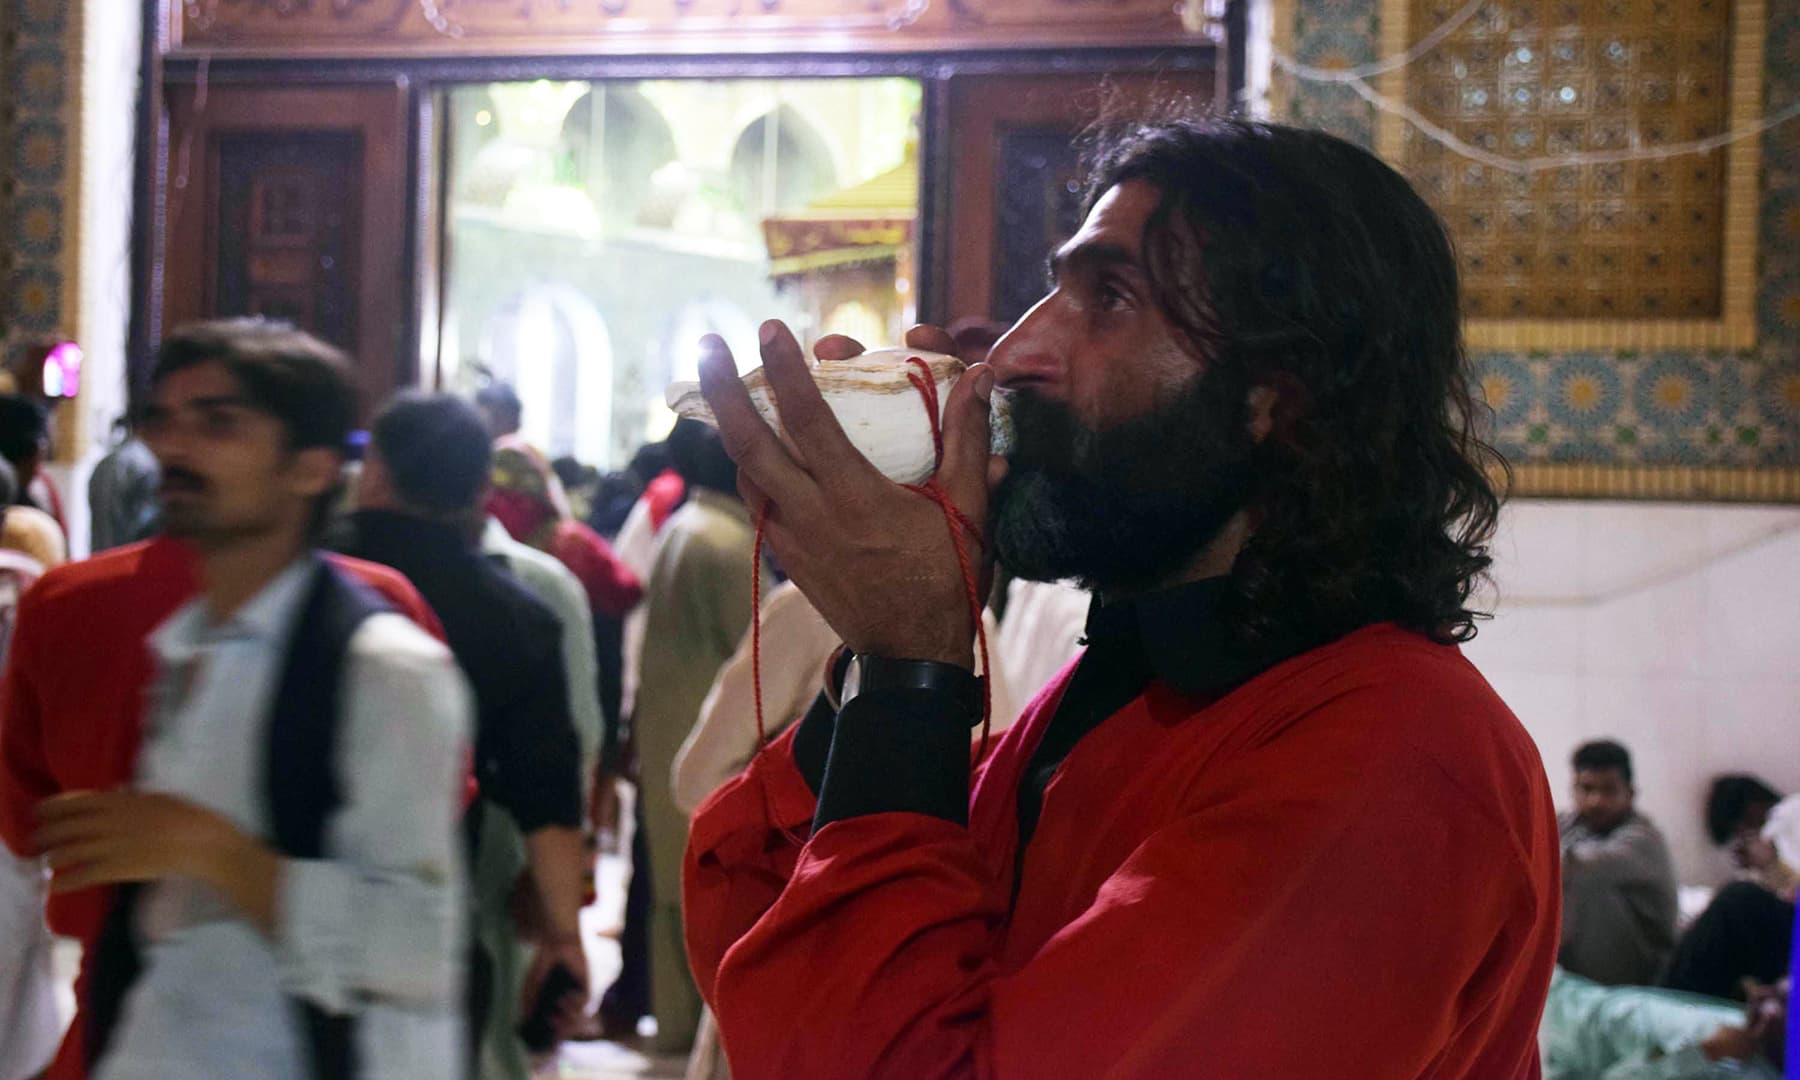 A devotee clad in a red-coloured dress blows on a seashell horn as a mark of his respect for Qalandar.